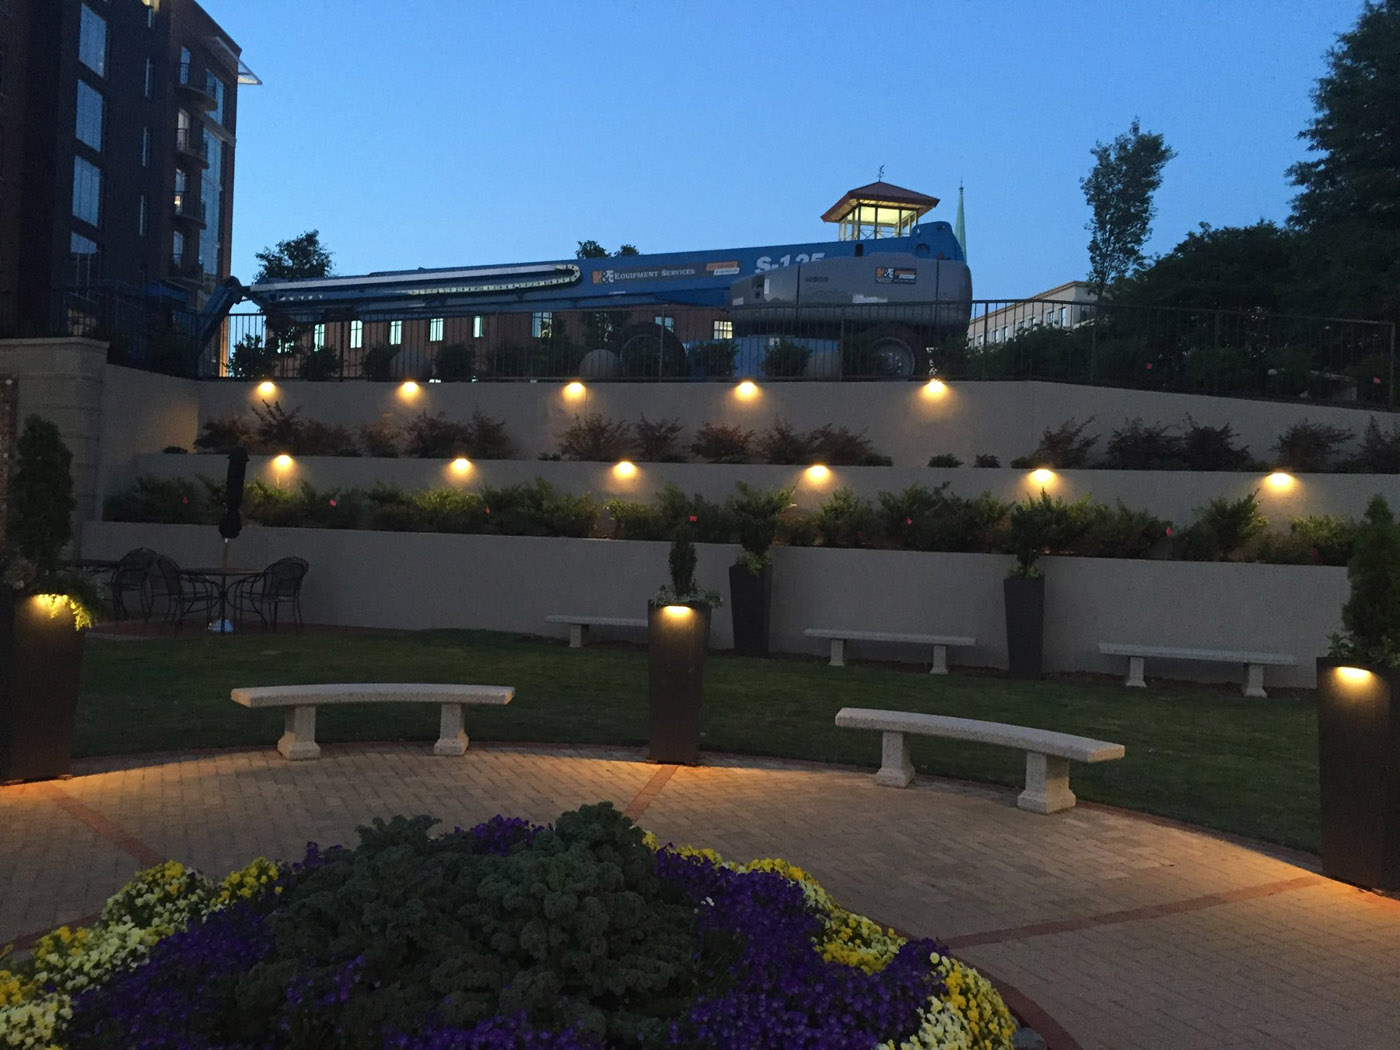 Commercial outdoor lighting-Lakeland FL Outdoor Lighting Installers-We Offer Outdoor Lighting Services, Landscape Lighting, Low Voltage Lighting, Outdoor LED landscape Lighting, Holiday Lighting, Christmas Lighting, Tree Lighting, Canopy Lighting, Residential outdoor Lighting, Commercial outdoor Lighting, Safety Lighting, Path and Garden Lighting, Mini lights and flood lights, Landscape Lighting installation, Outdoor spot lights, Outdoor LED garden Lighting, Dock Lighting, Accent lights, Deck and patio lights, Security lights, Underwater Lighting, Tree upLighting, Outdoor Lighting repair services, and more.